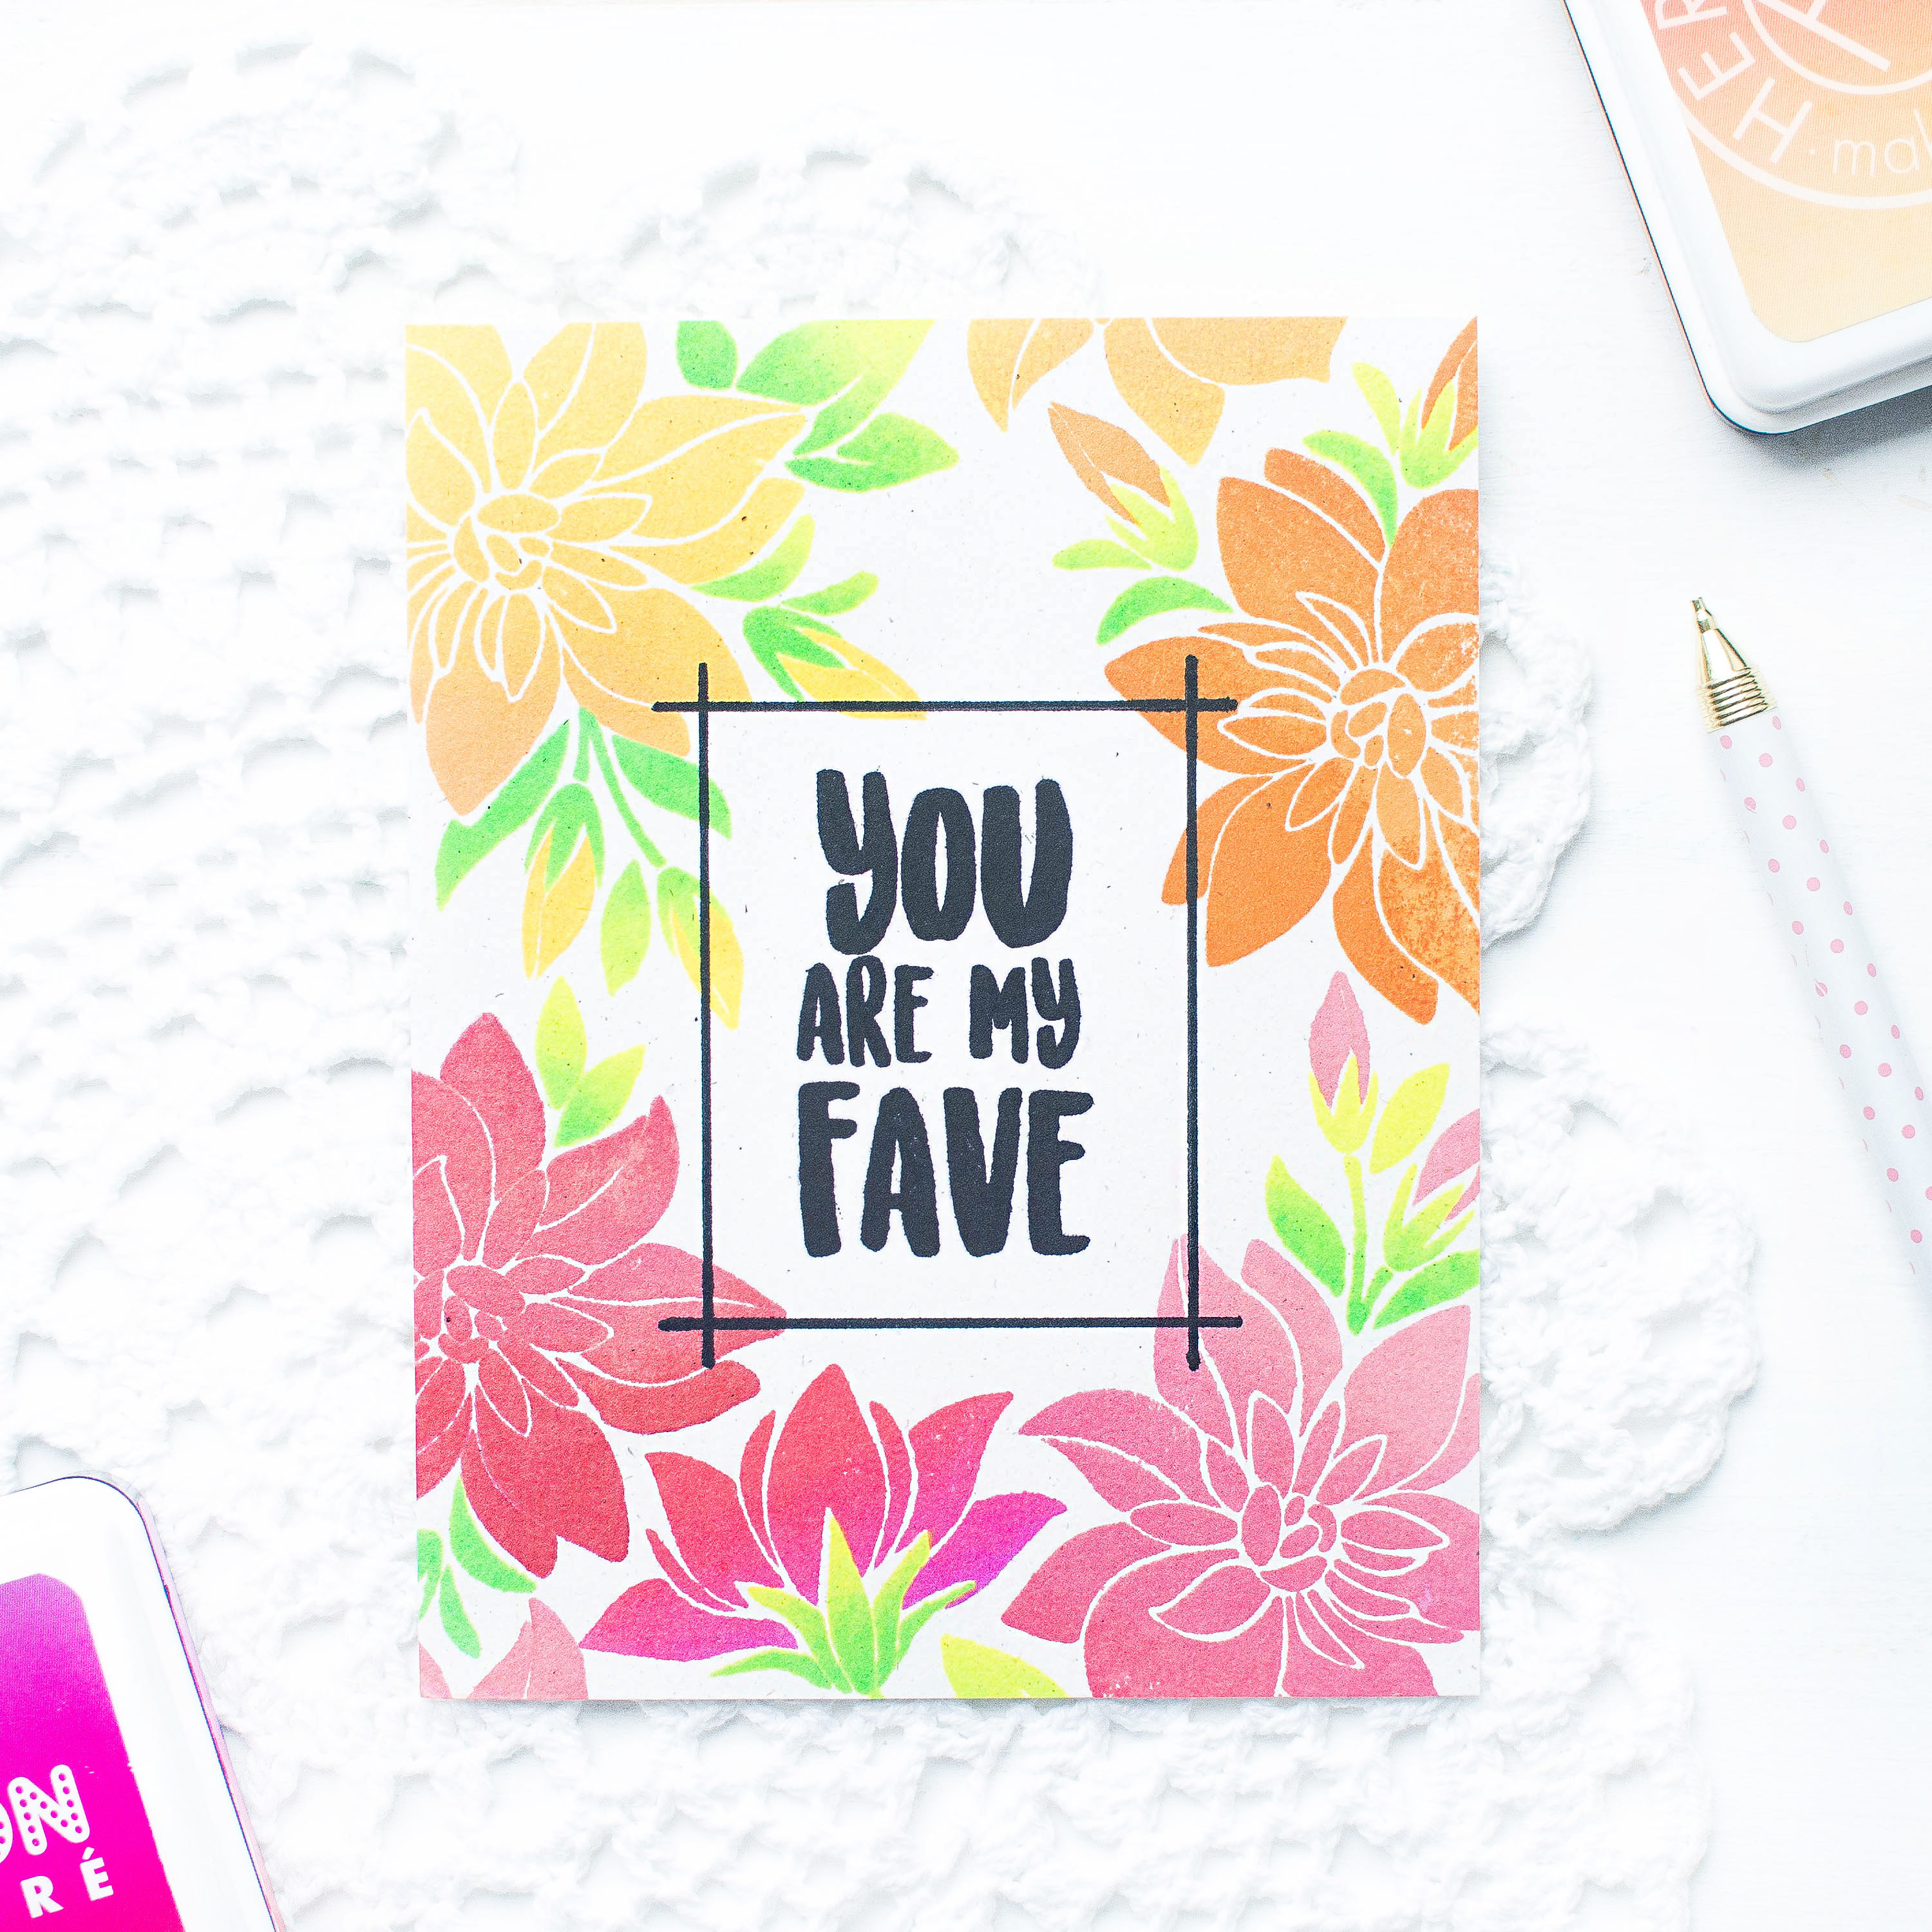 giveaway-video-one-layer-card-floral-stamped-background